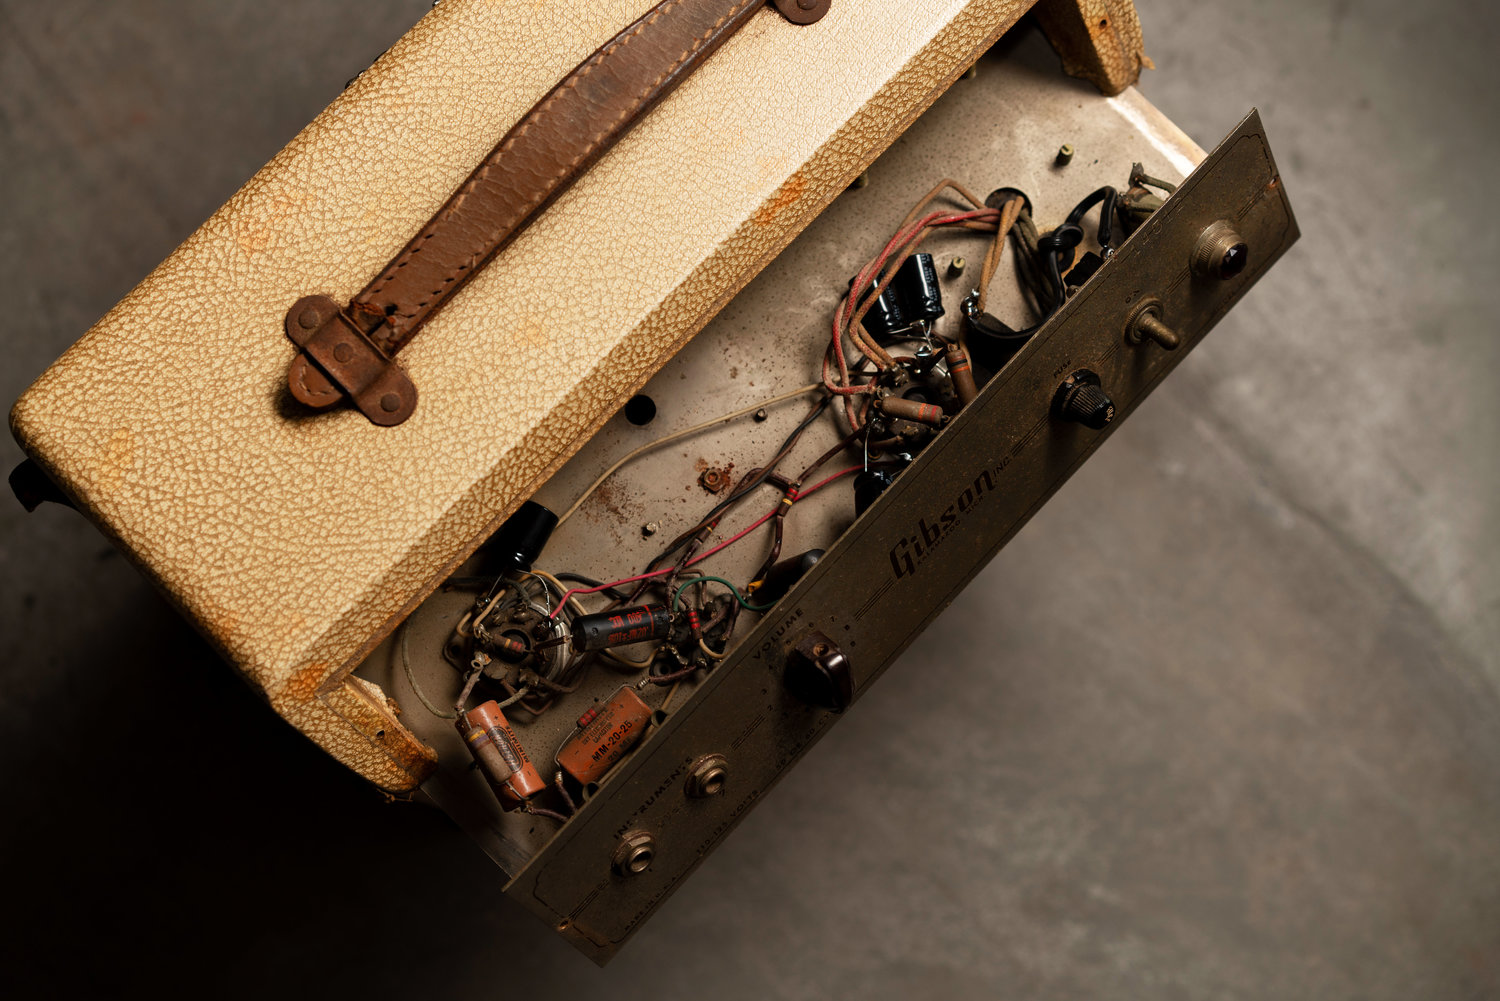 What is a Hand-Wired Amplifier?